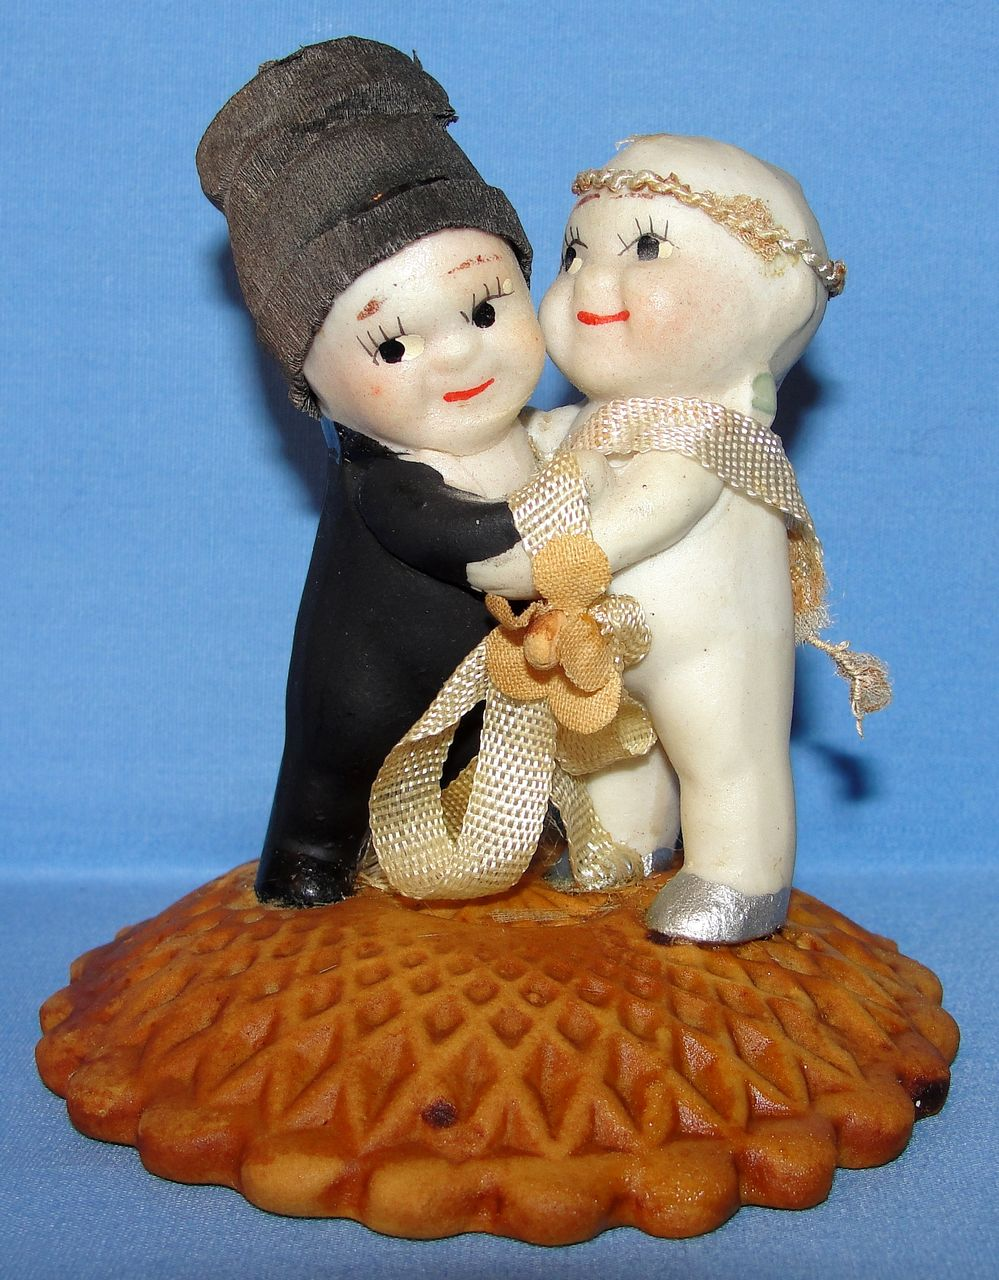 All Bisque Old Kewpie Huggers Bride & Groom Cake Topper